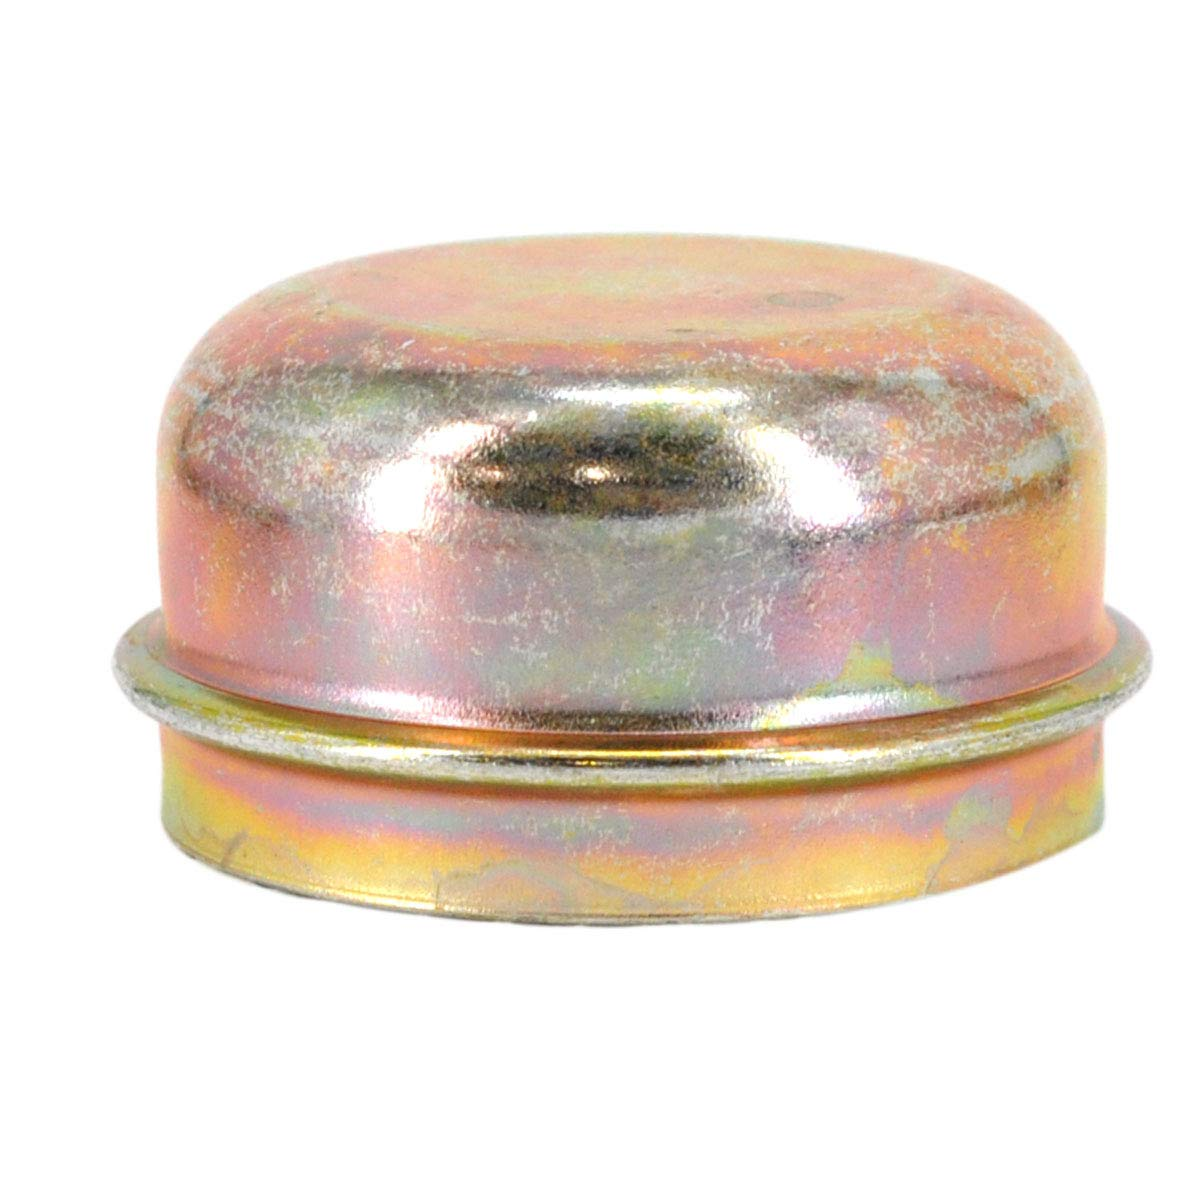 Grasshopper Japan's largest assortment Mower Bearing Dust Whee Cap Store Protects Domed